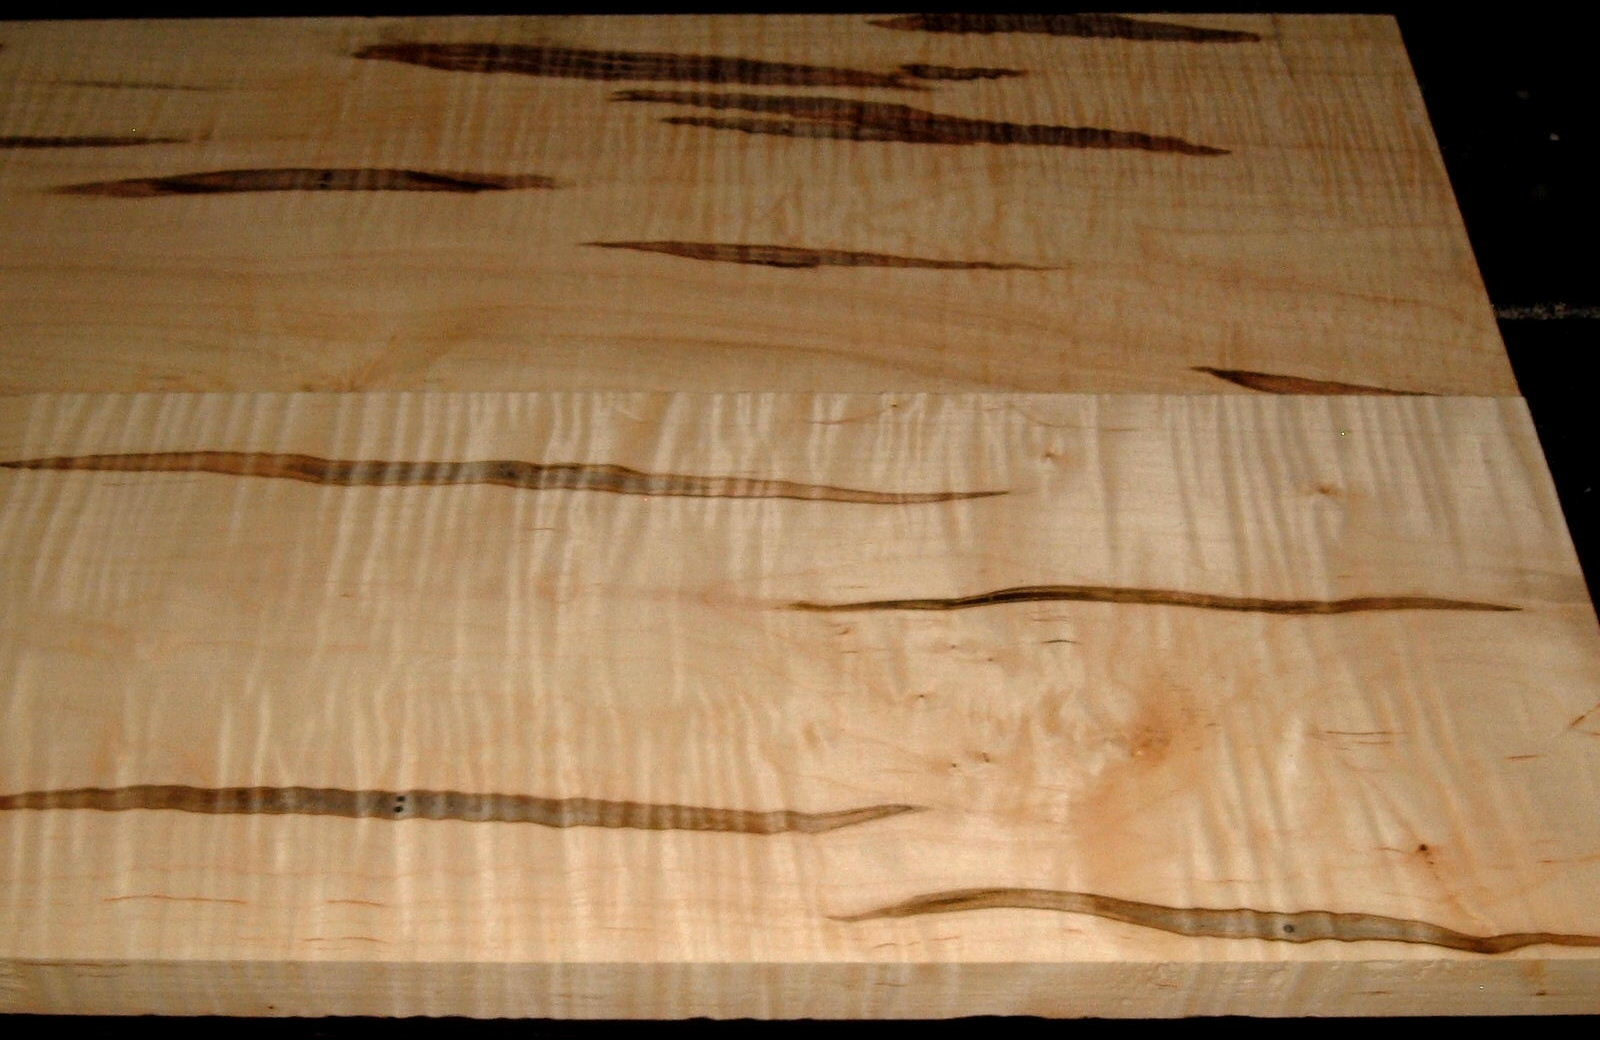 AM1912-135, 2 Bd Set, 7/8x8-1/4x44, 15/16x8-1/2x44, Curly Tiger Ambrosia Wormy Maple